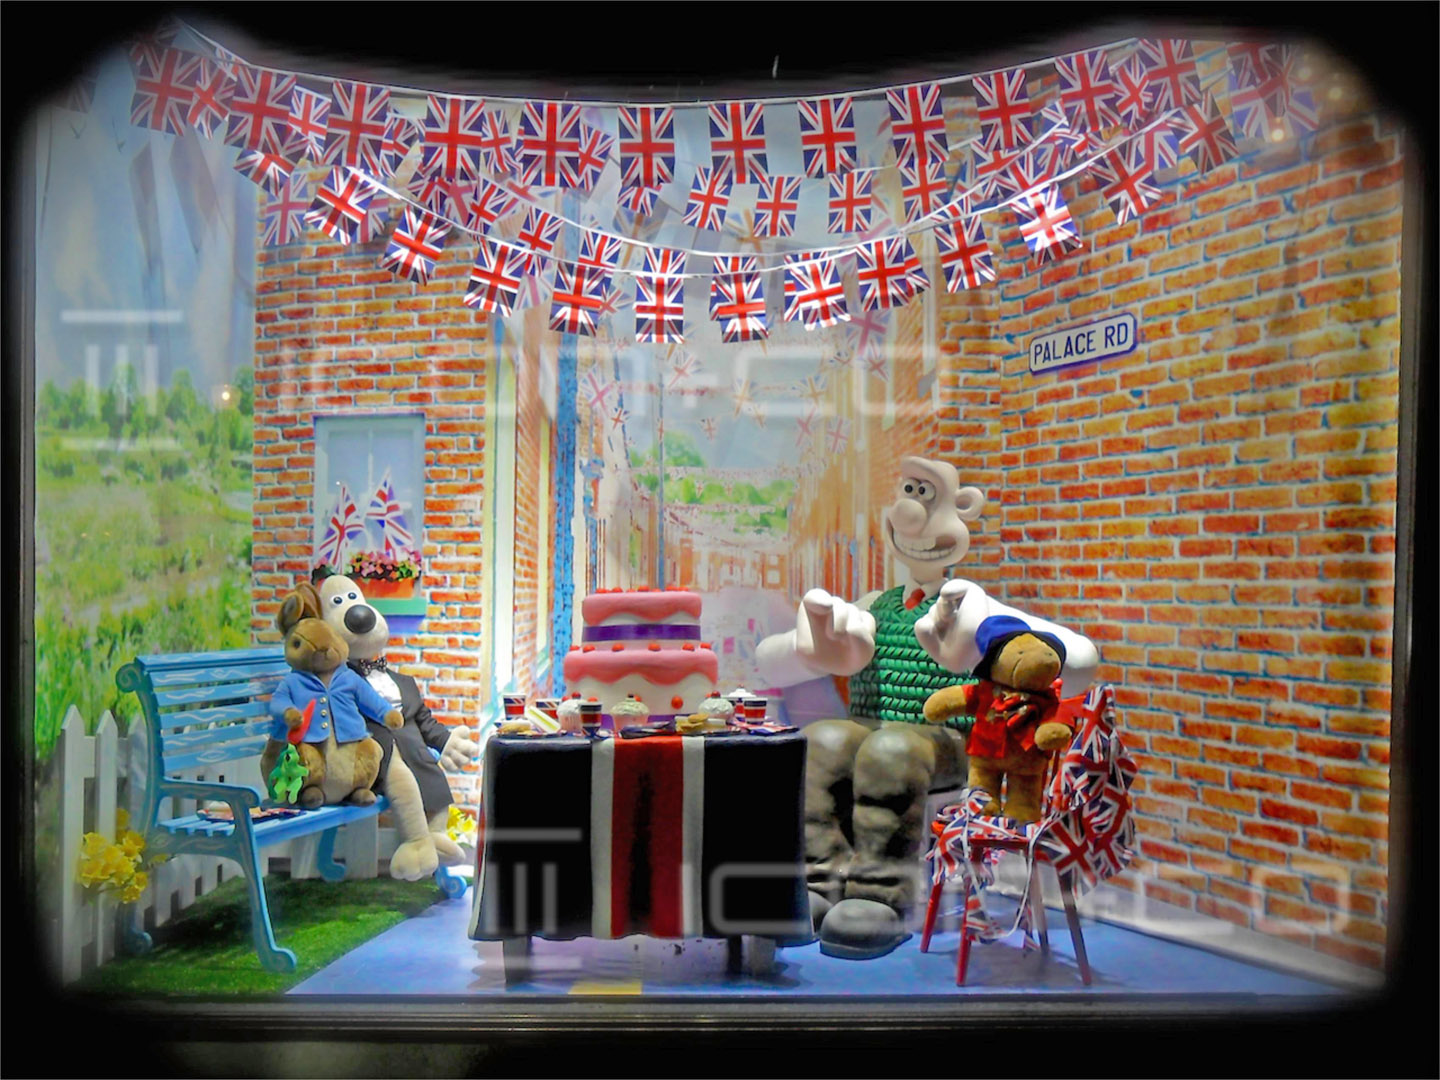 Sculpted 3D props, scenic artist, large format printing, wallace & gromit, paddington bear, royal wedding London